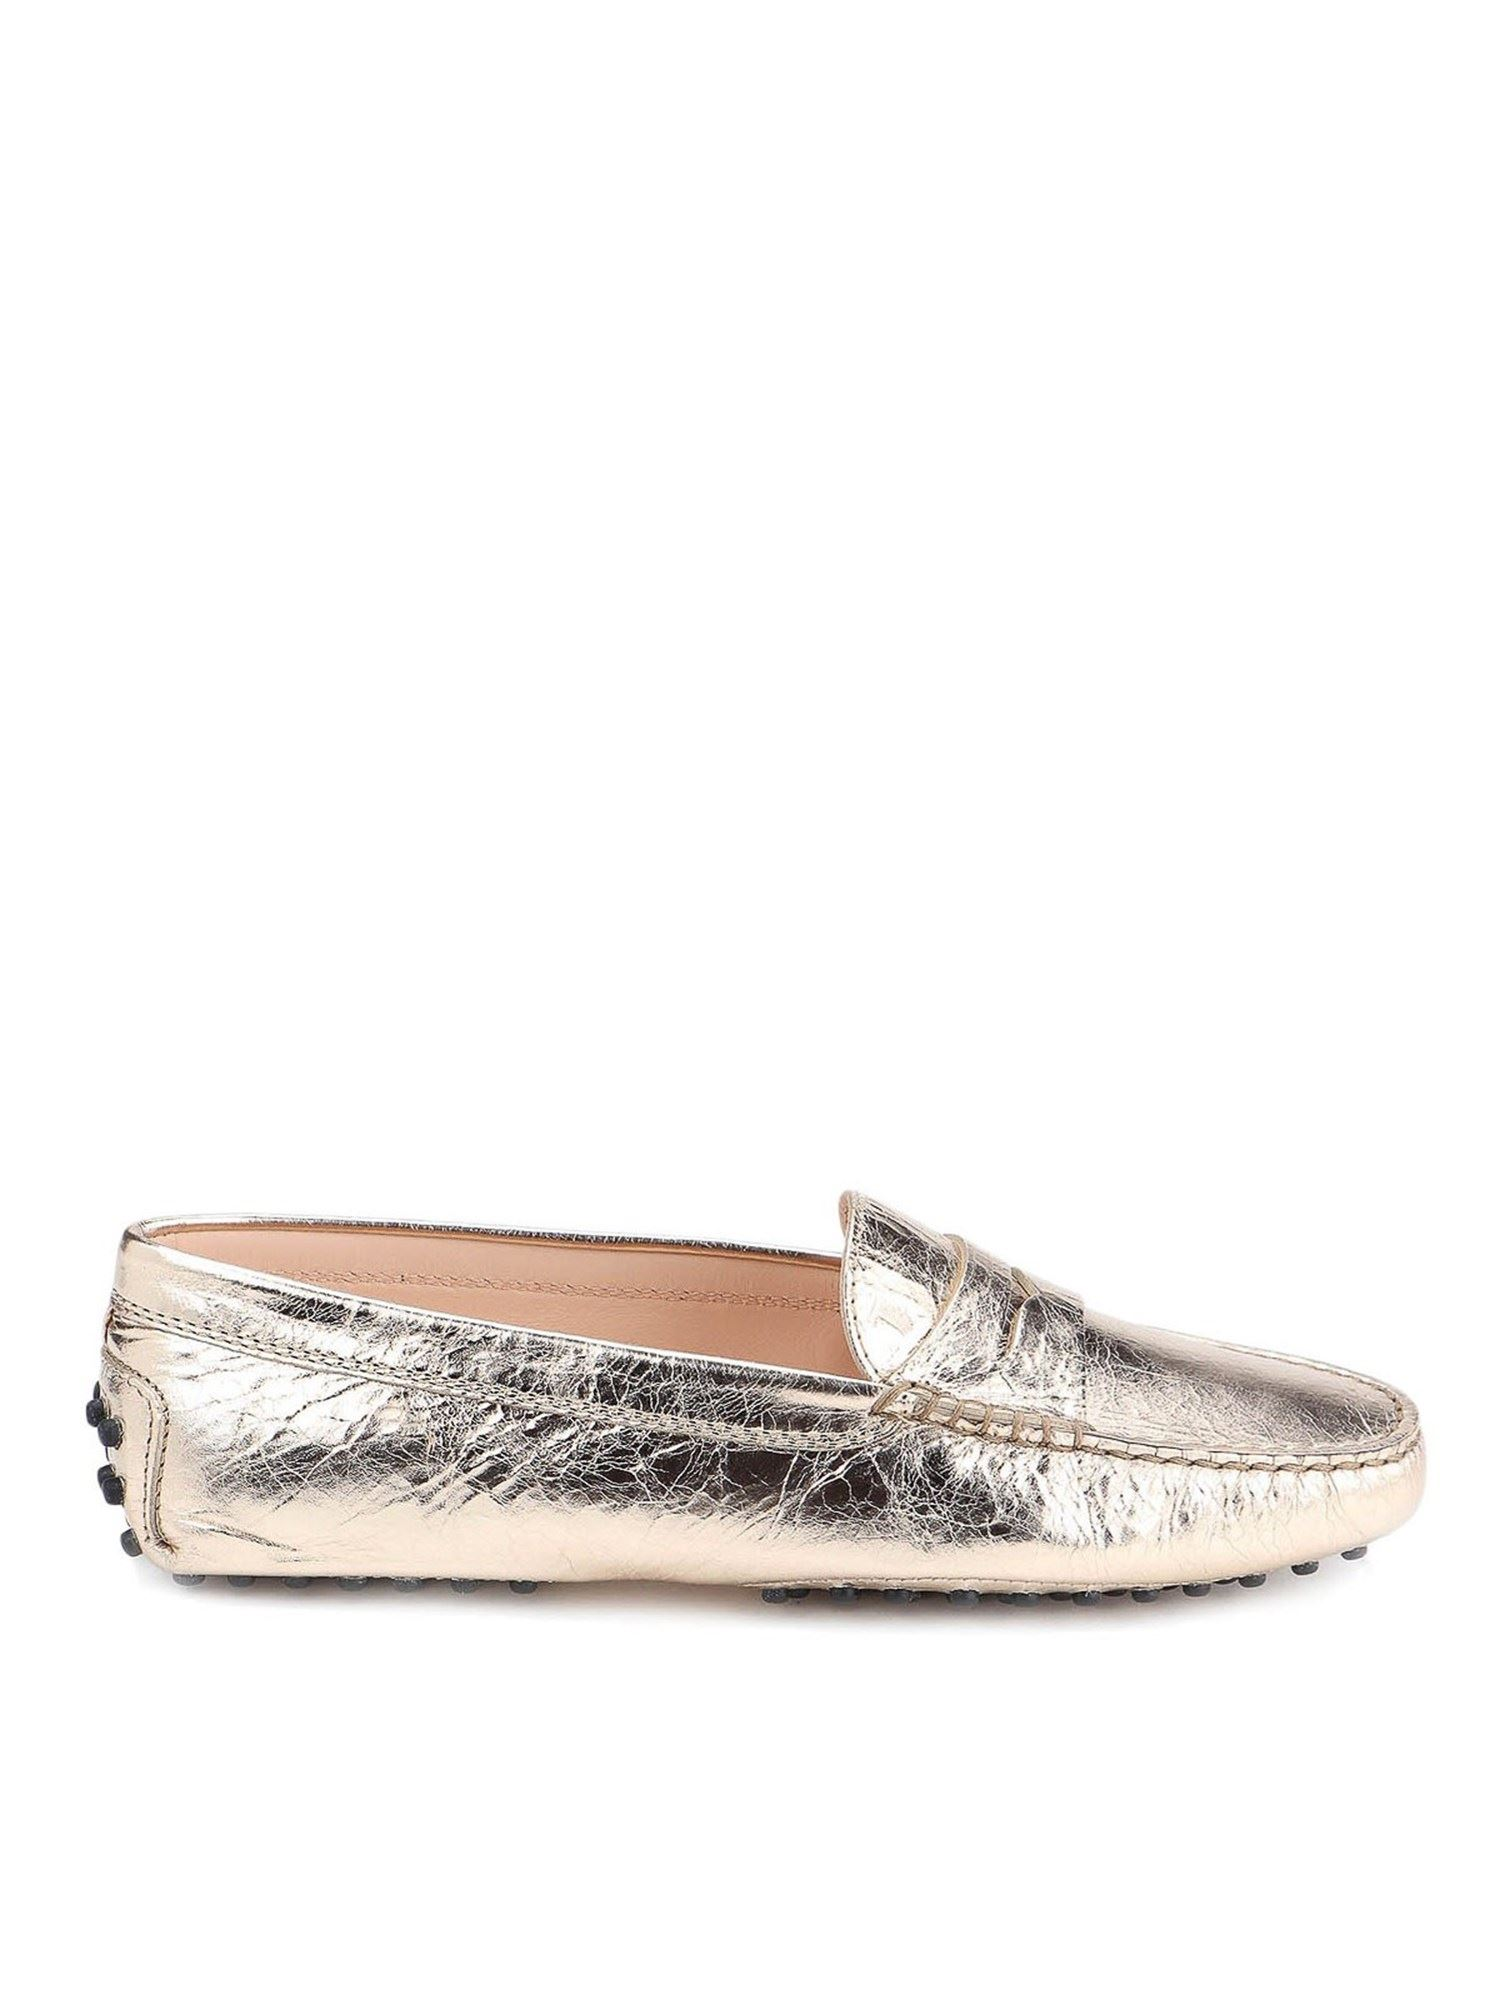 Tod's Leathers CRACKLED LEATHER LOAFERS IN GOLDEN COLOR